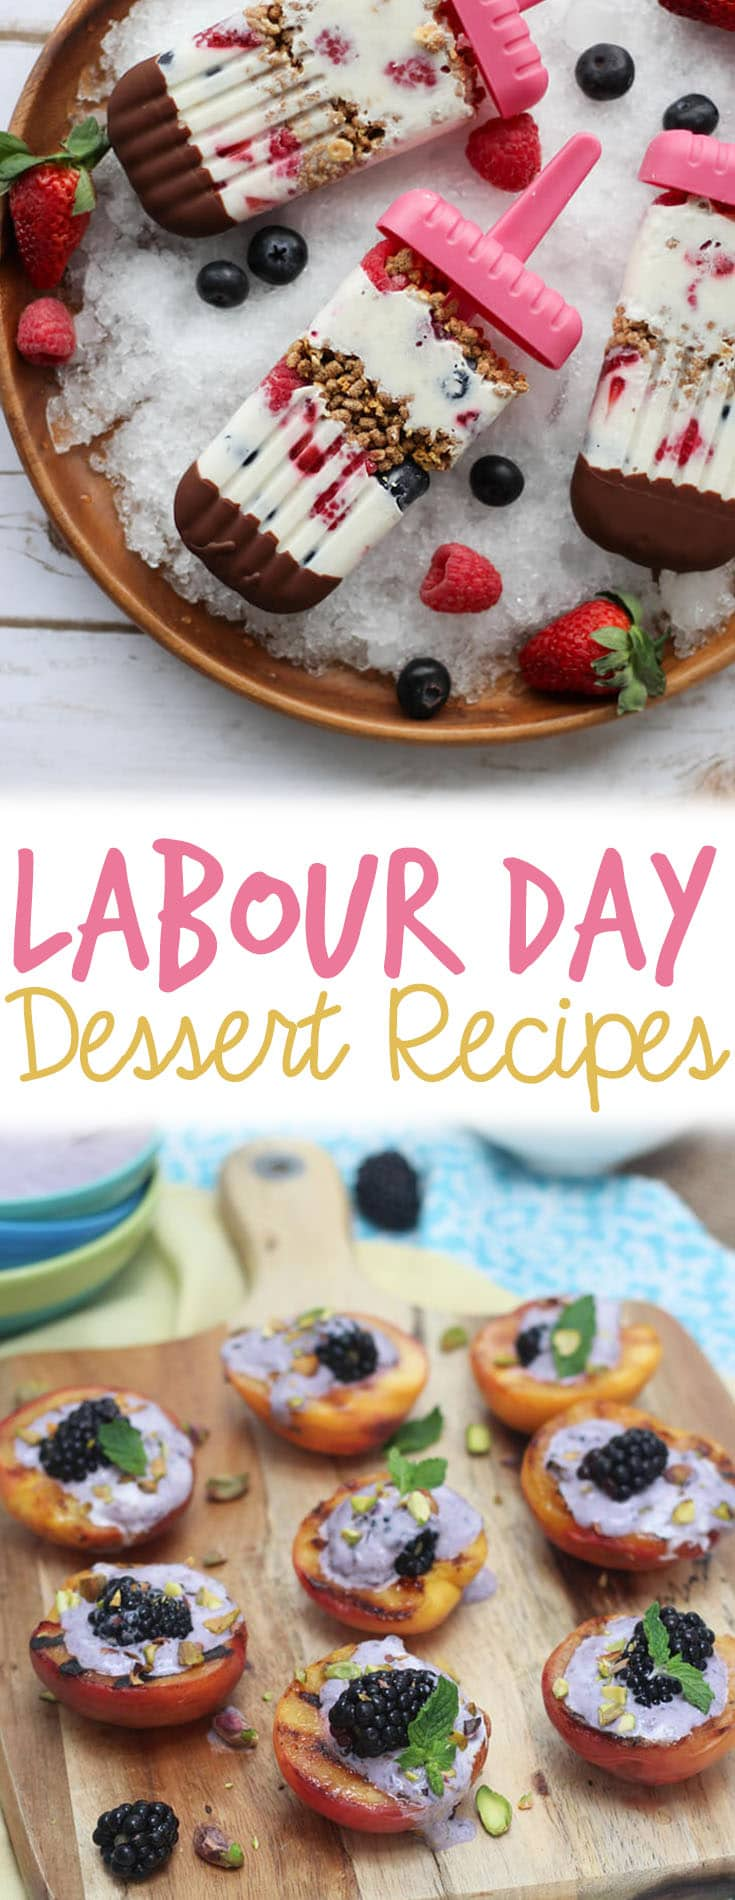 These Labor Day healthy dessert recipes will help you end your BBQ (and Summer, in general) with a total bang!